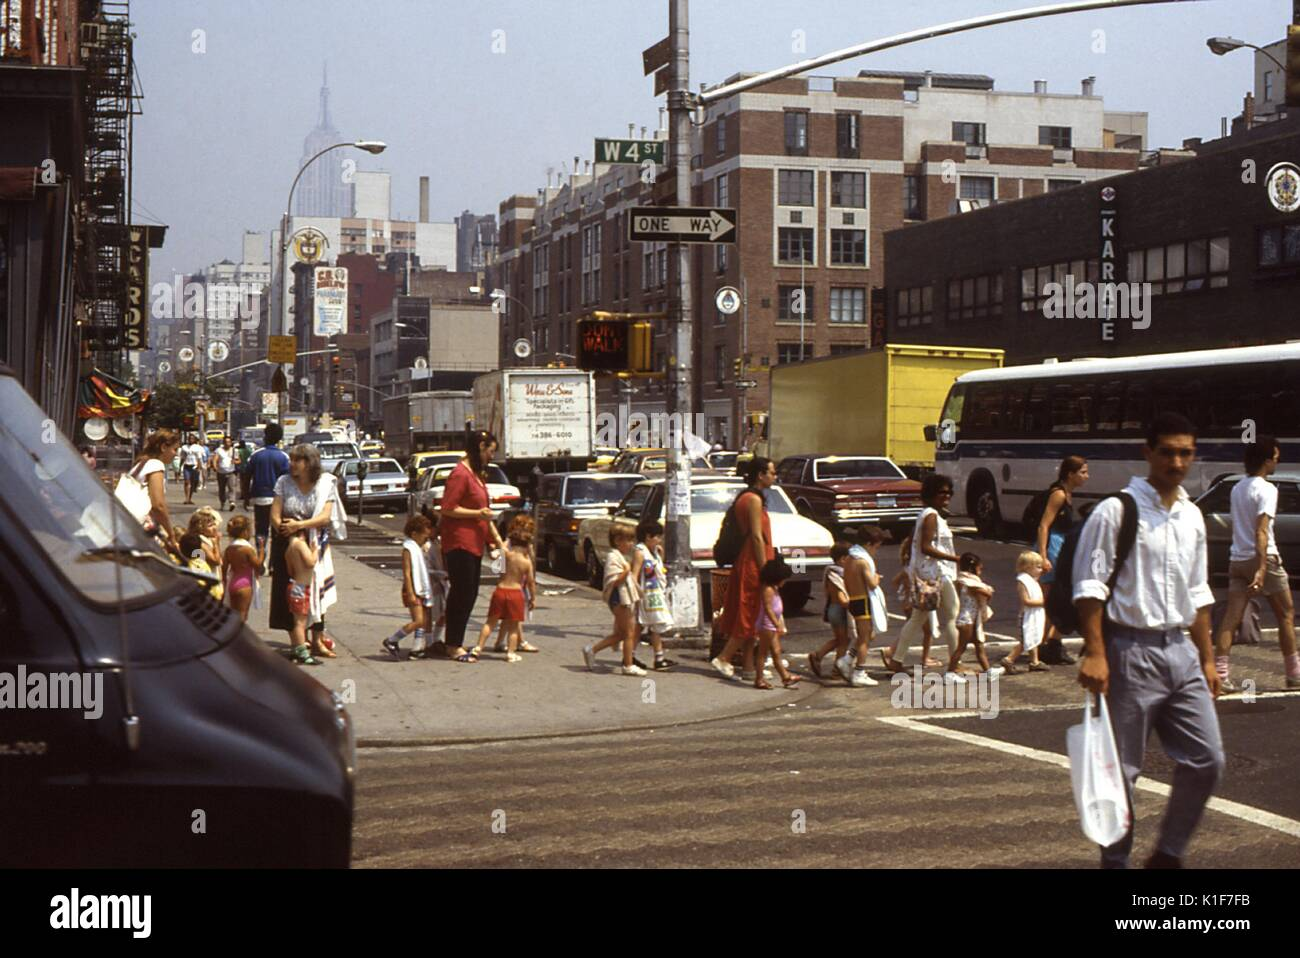 This 1988 photograph depicted numbers of children as they were being helped by adults safely across a New York City street. Reflecting concern for children's safety, the New York City, Department of Transportation (NYCDOT) initiated a 'Walk to School Program' in 2005. New York City (NYC) is a high-pedestrian activity locale. Nine out of 10 Bronx children, for example, walk to school. Besides safety concerns, the 'Walk to School Program' benefits include more physical activity for children and adults in neighborhoods, less traffic and harmful emissions, reduced crime because more people are out - Stock Image